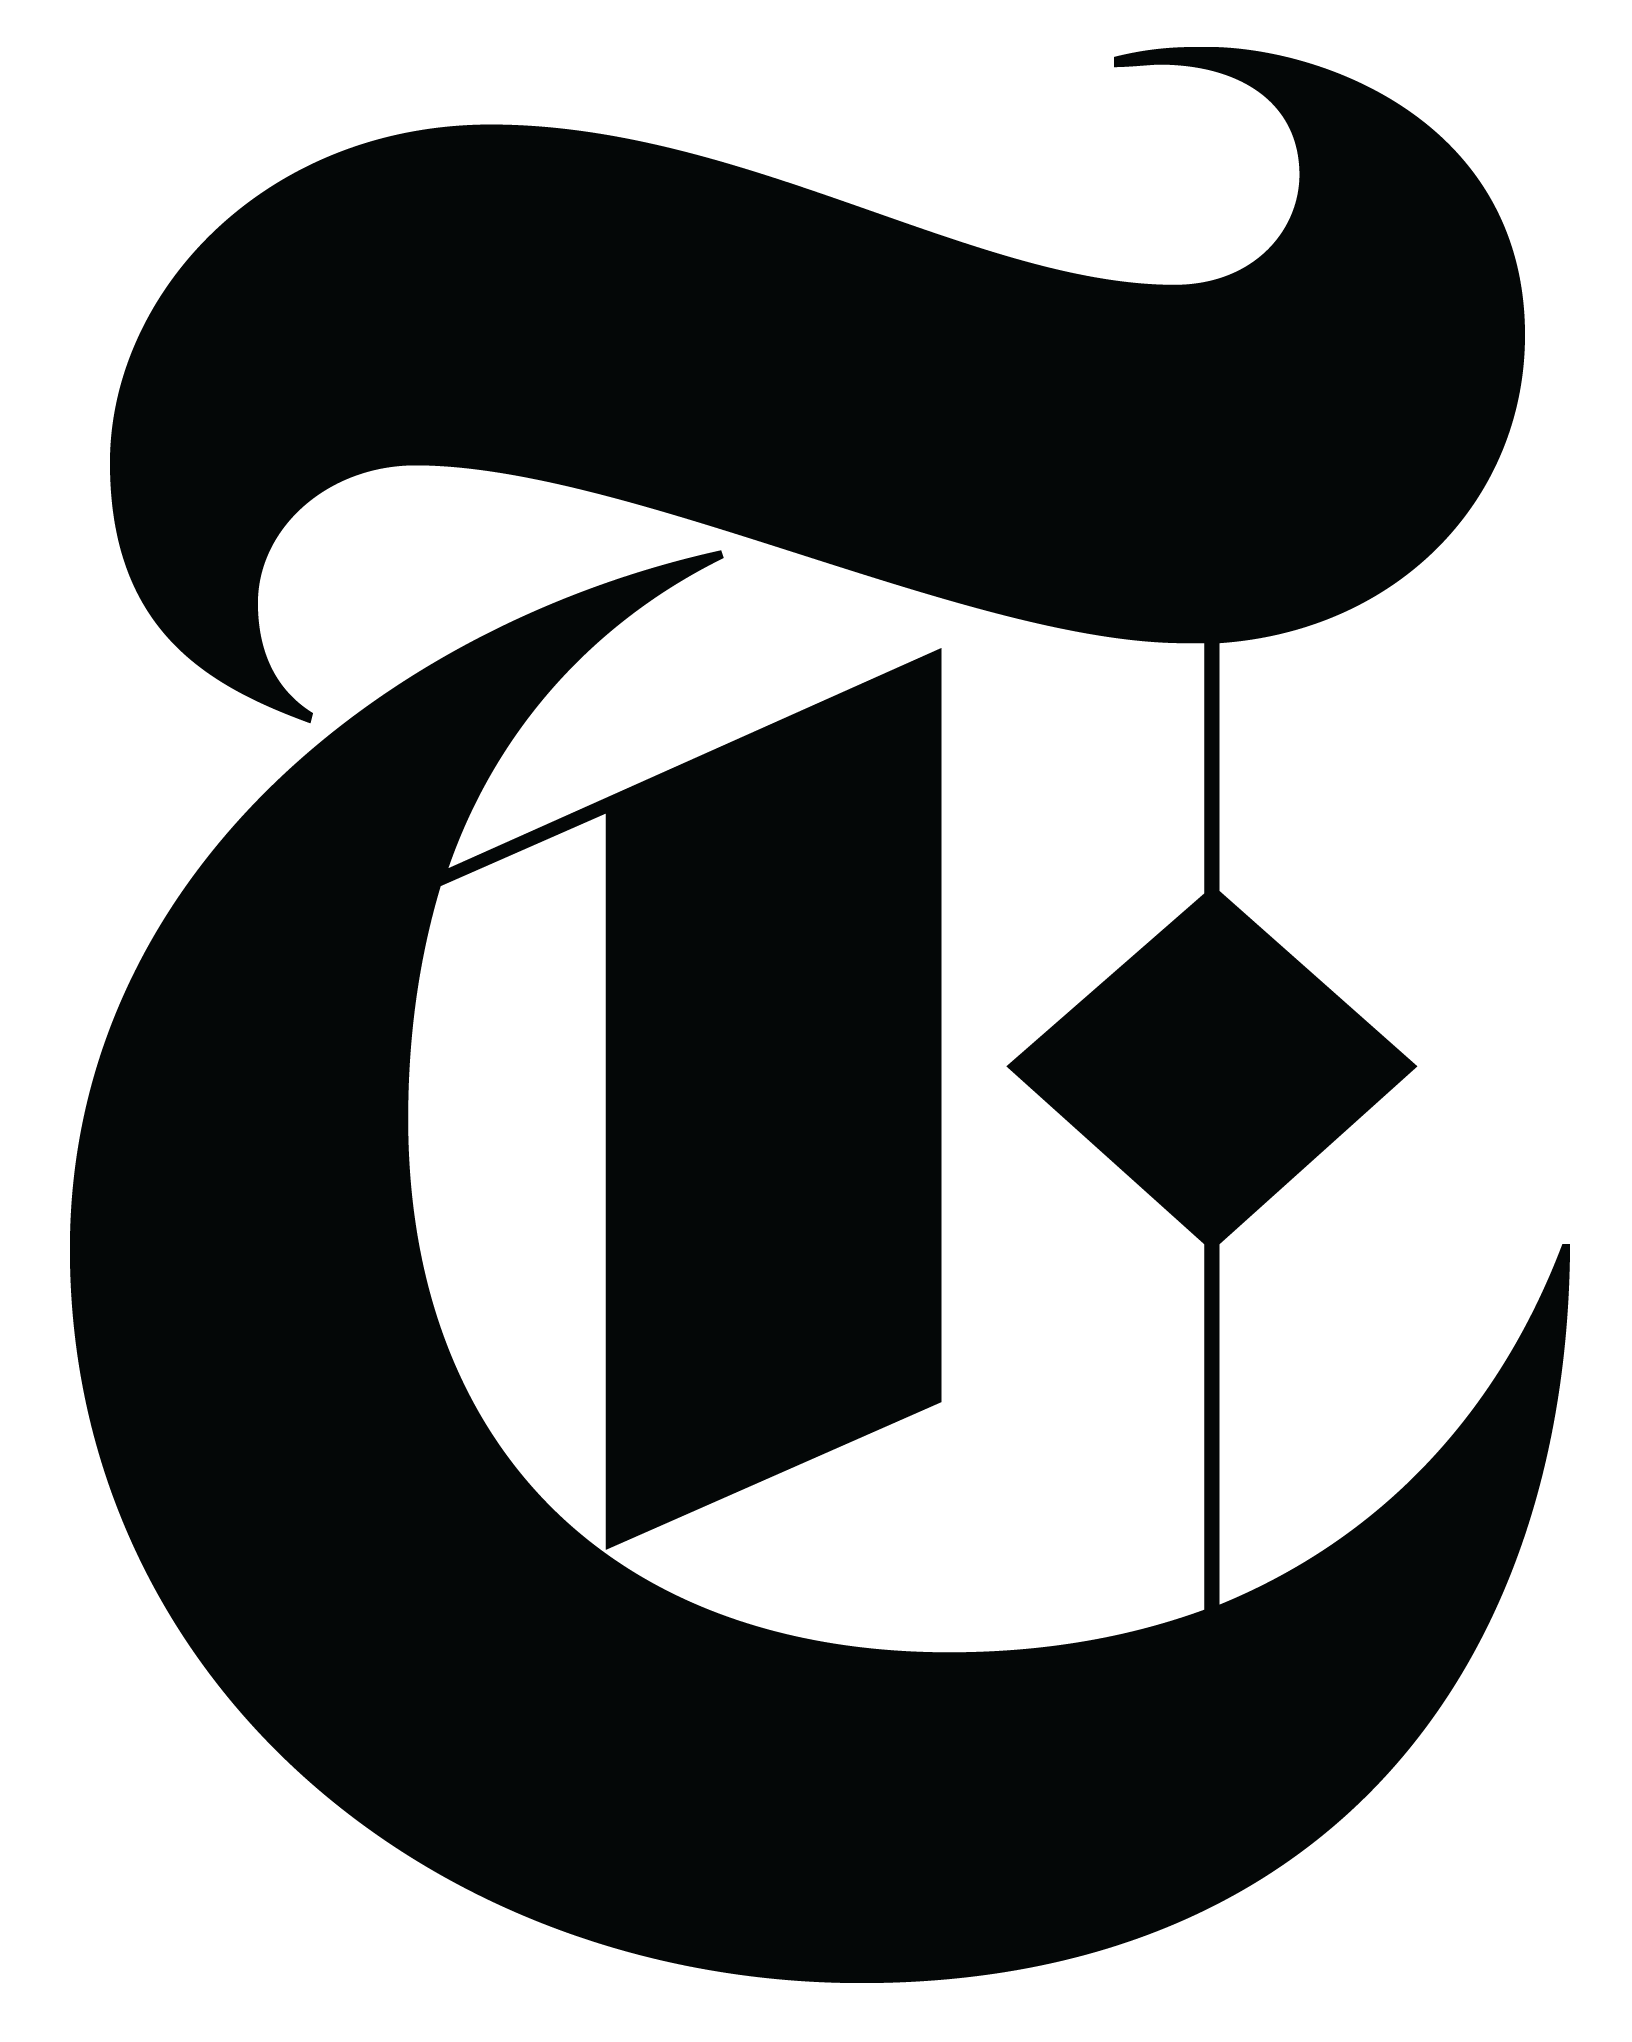 Essay criticizes pieces 'The New York Times' is publishing ...